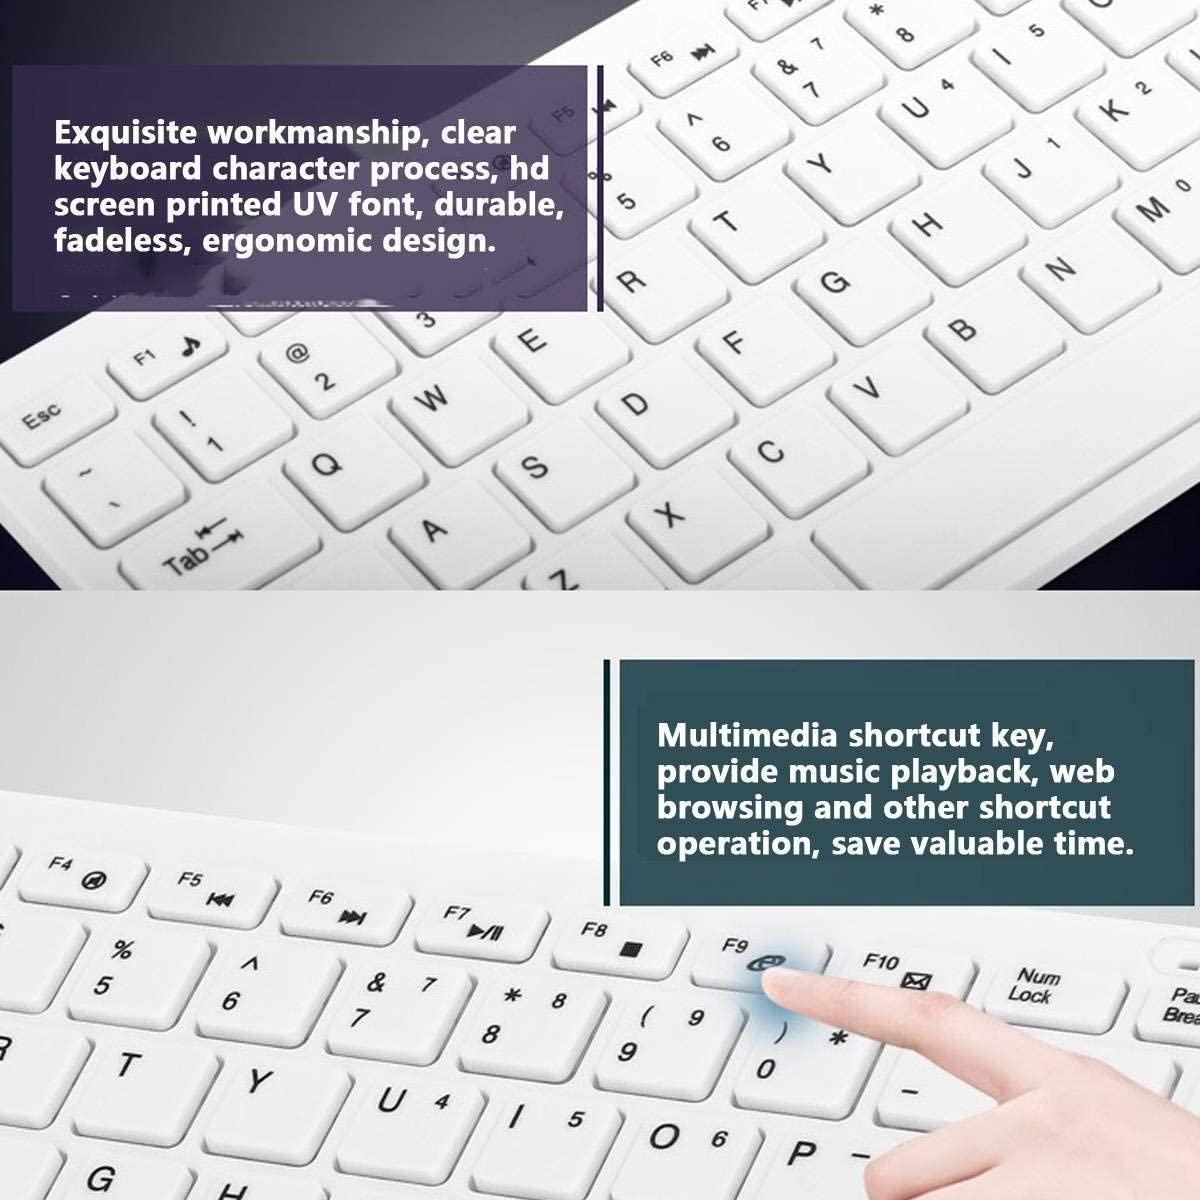 Ezonedeal Wireless Keyboard Mouse Combo Full Size Slim Thin Wireless Keyboard and Mouse Combo with USB Nano Receiver for Laptop PC